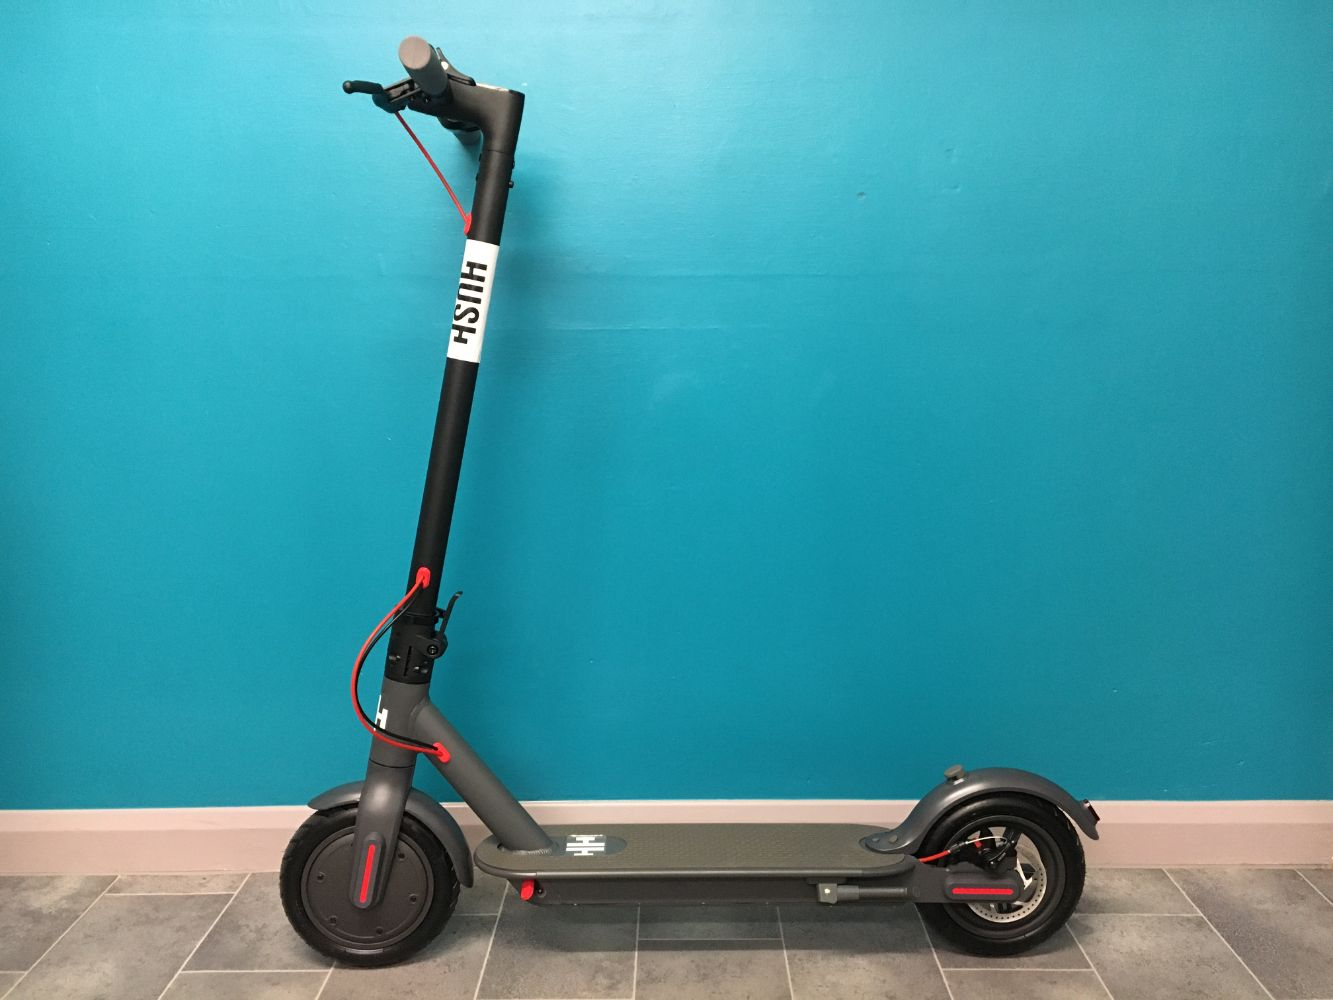 Brand New Electric Scooters by Hush: E-scooters Direct from Manufacturer - Battery-Powered, 3 Speeds, Foldable